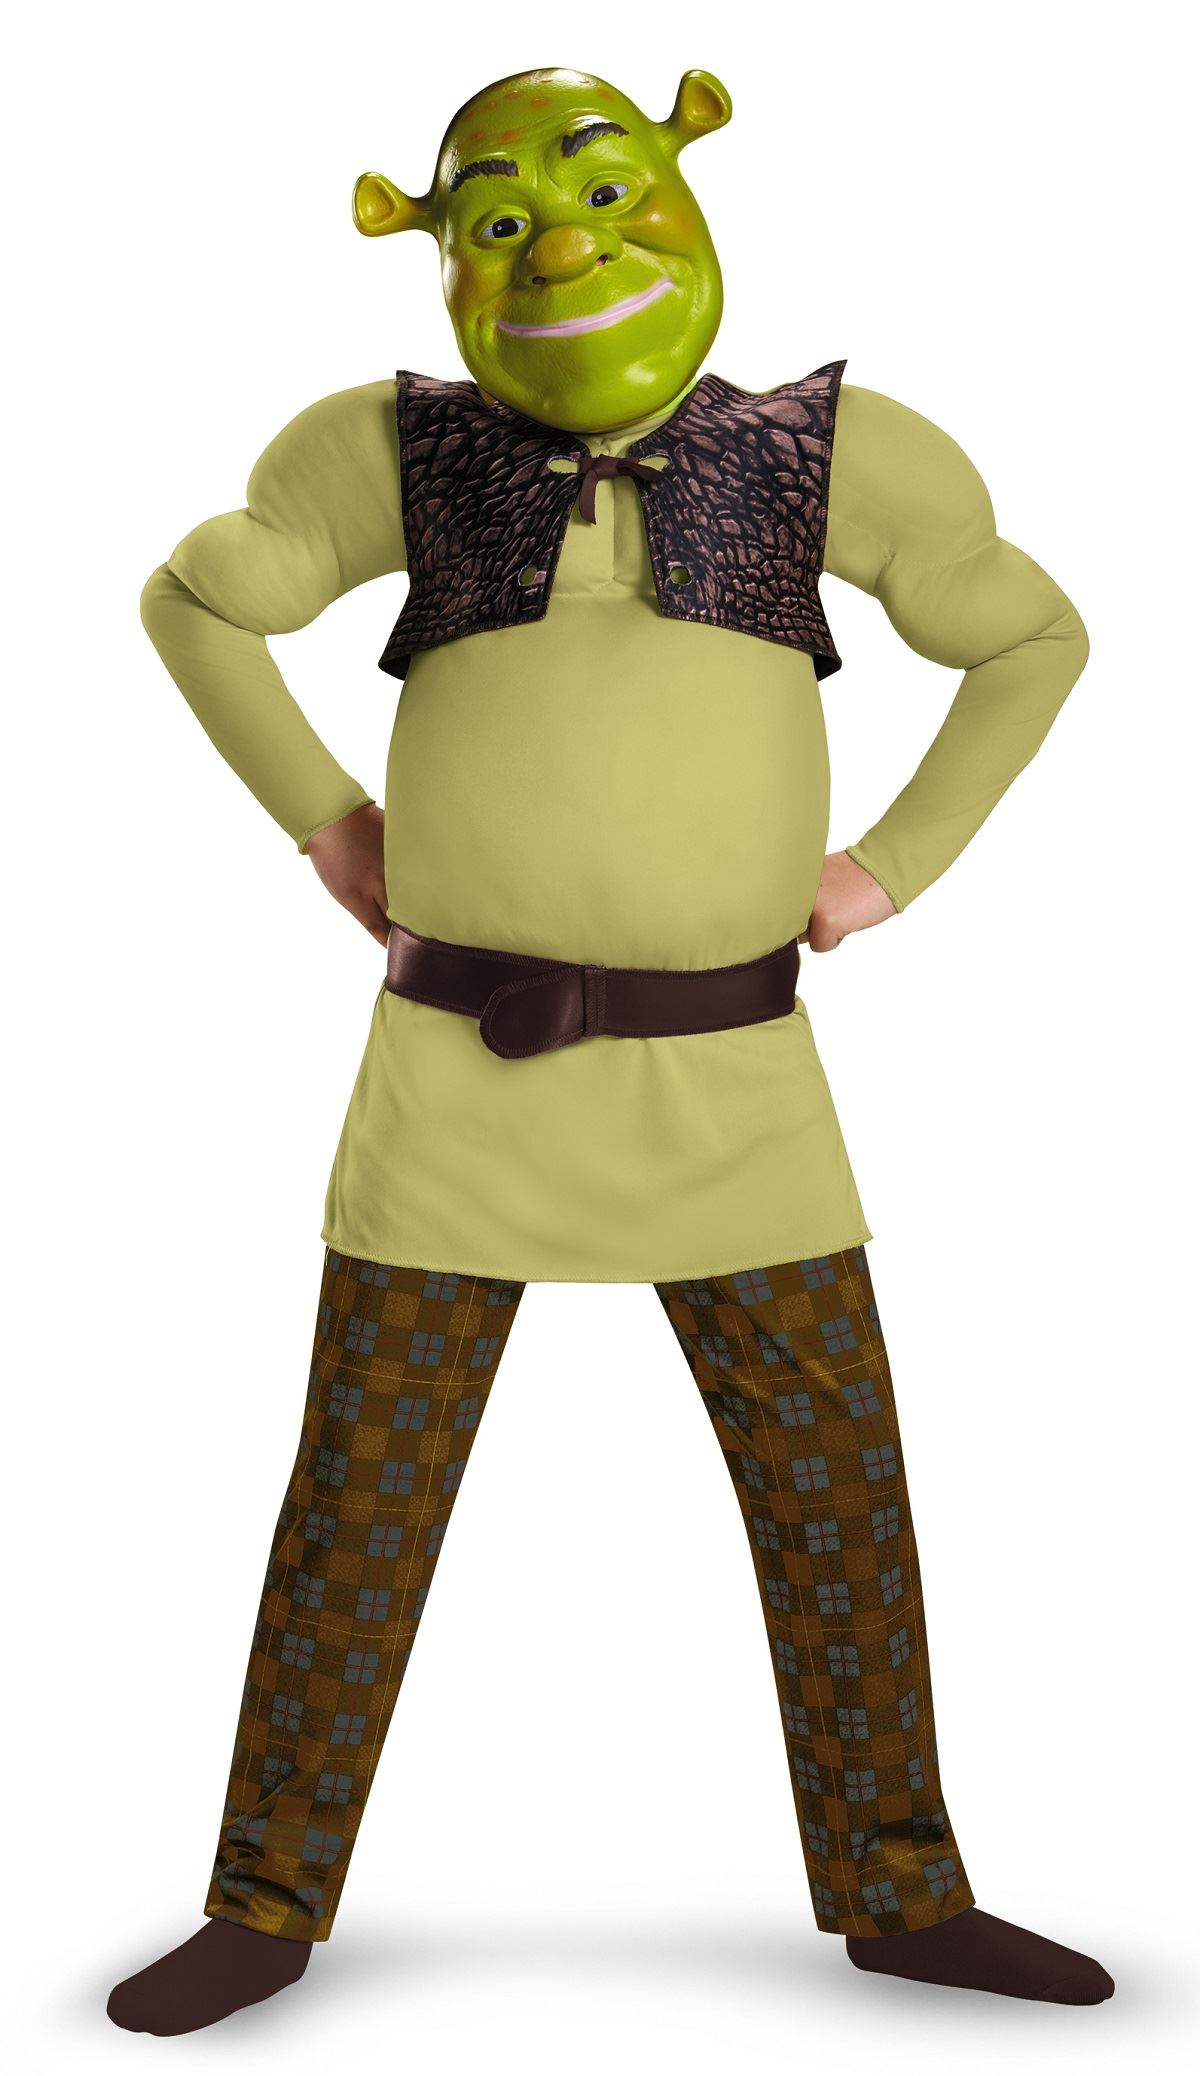 ... kids shrek muscle boys costume ...  sc 1 st  Best Kids Costumes & Shrek Kids Costume - Best Kids Costumes